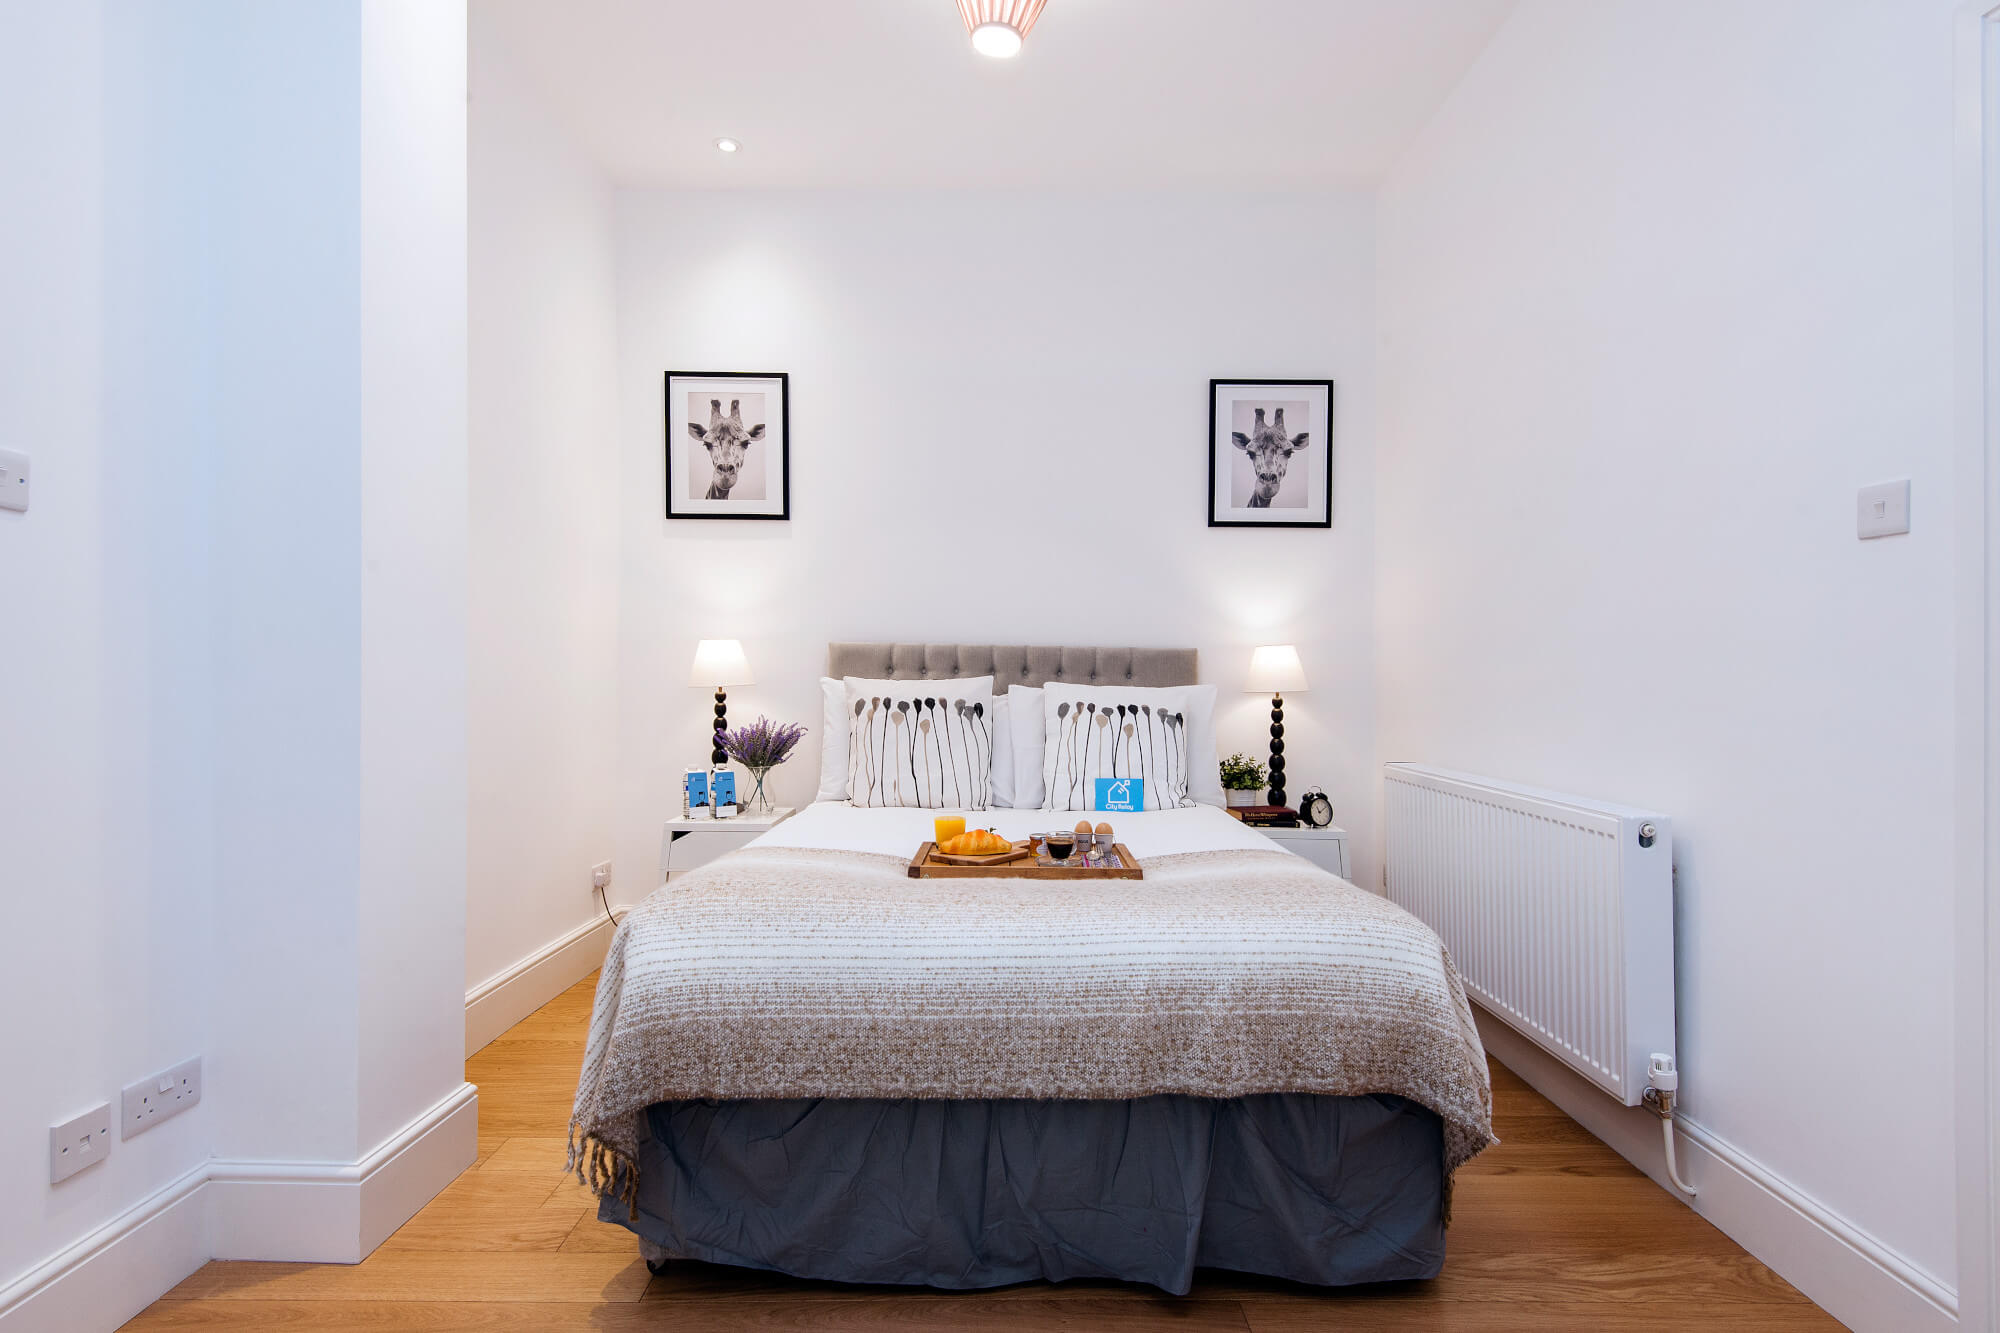 The North End Road Residence I - bedroom - king sized bed - one bedroom modern apartment london